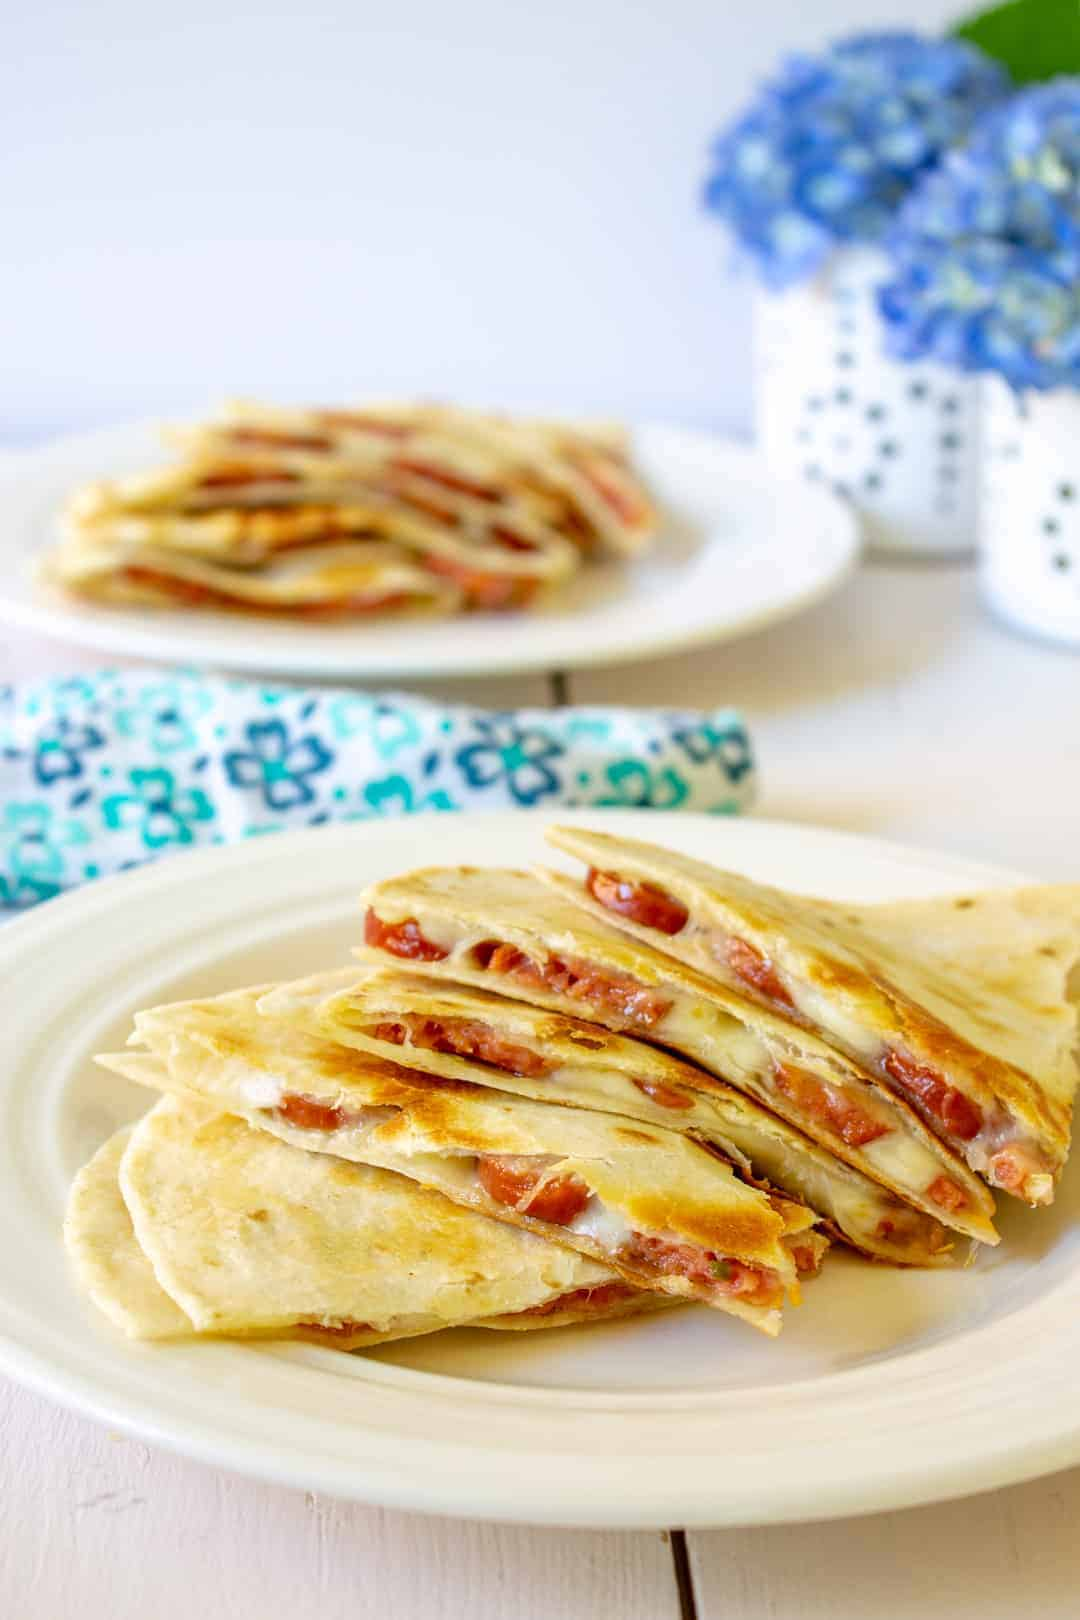 Smoked sausage quesadillas are a delicious way to get lunch or dinner on the table in a flash.